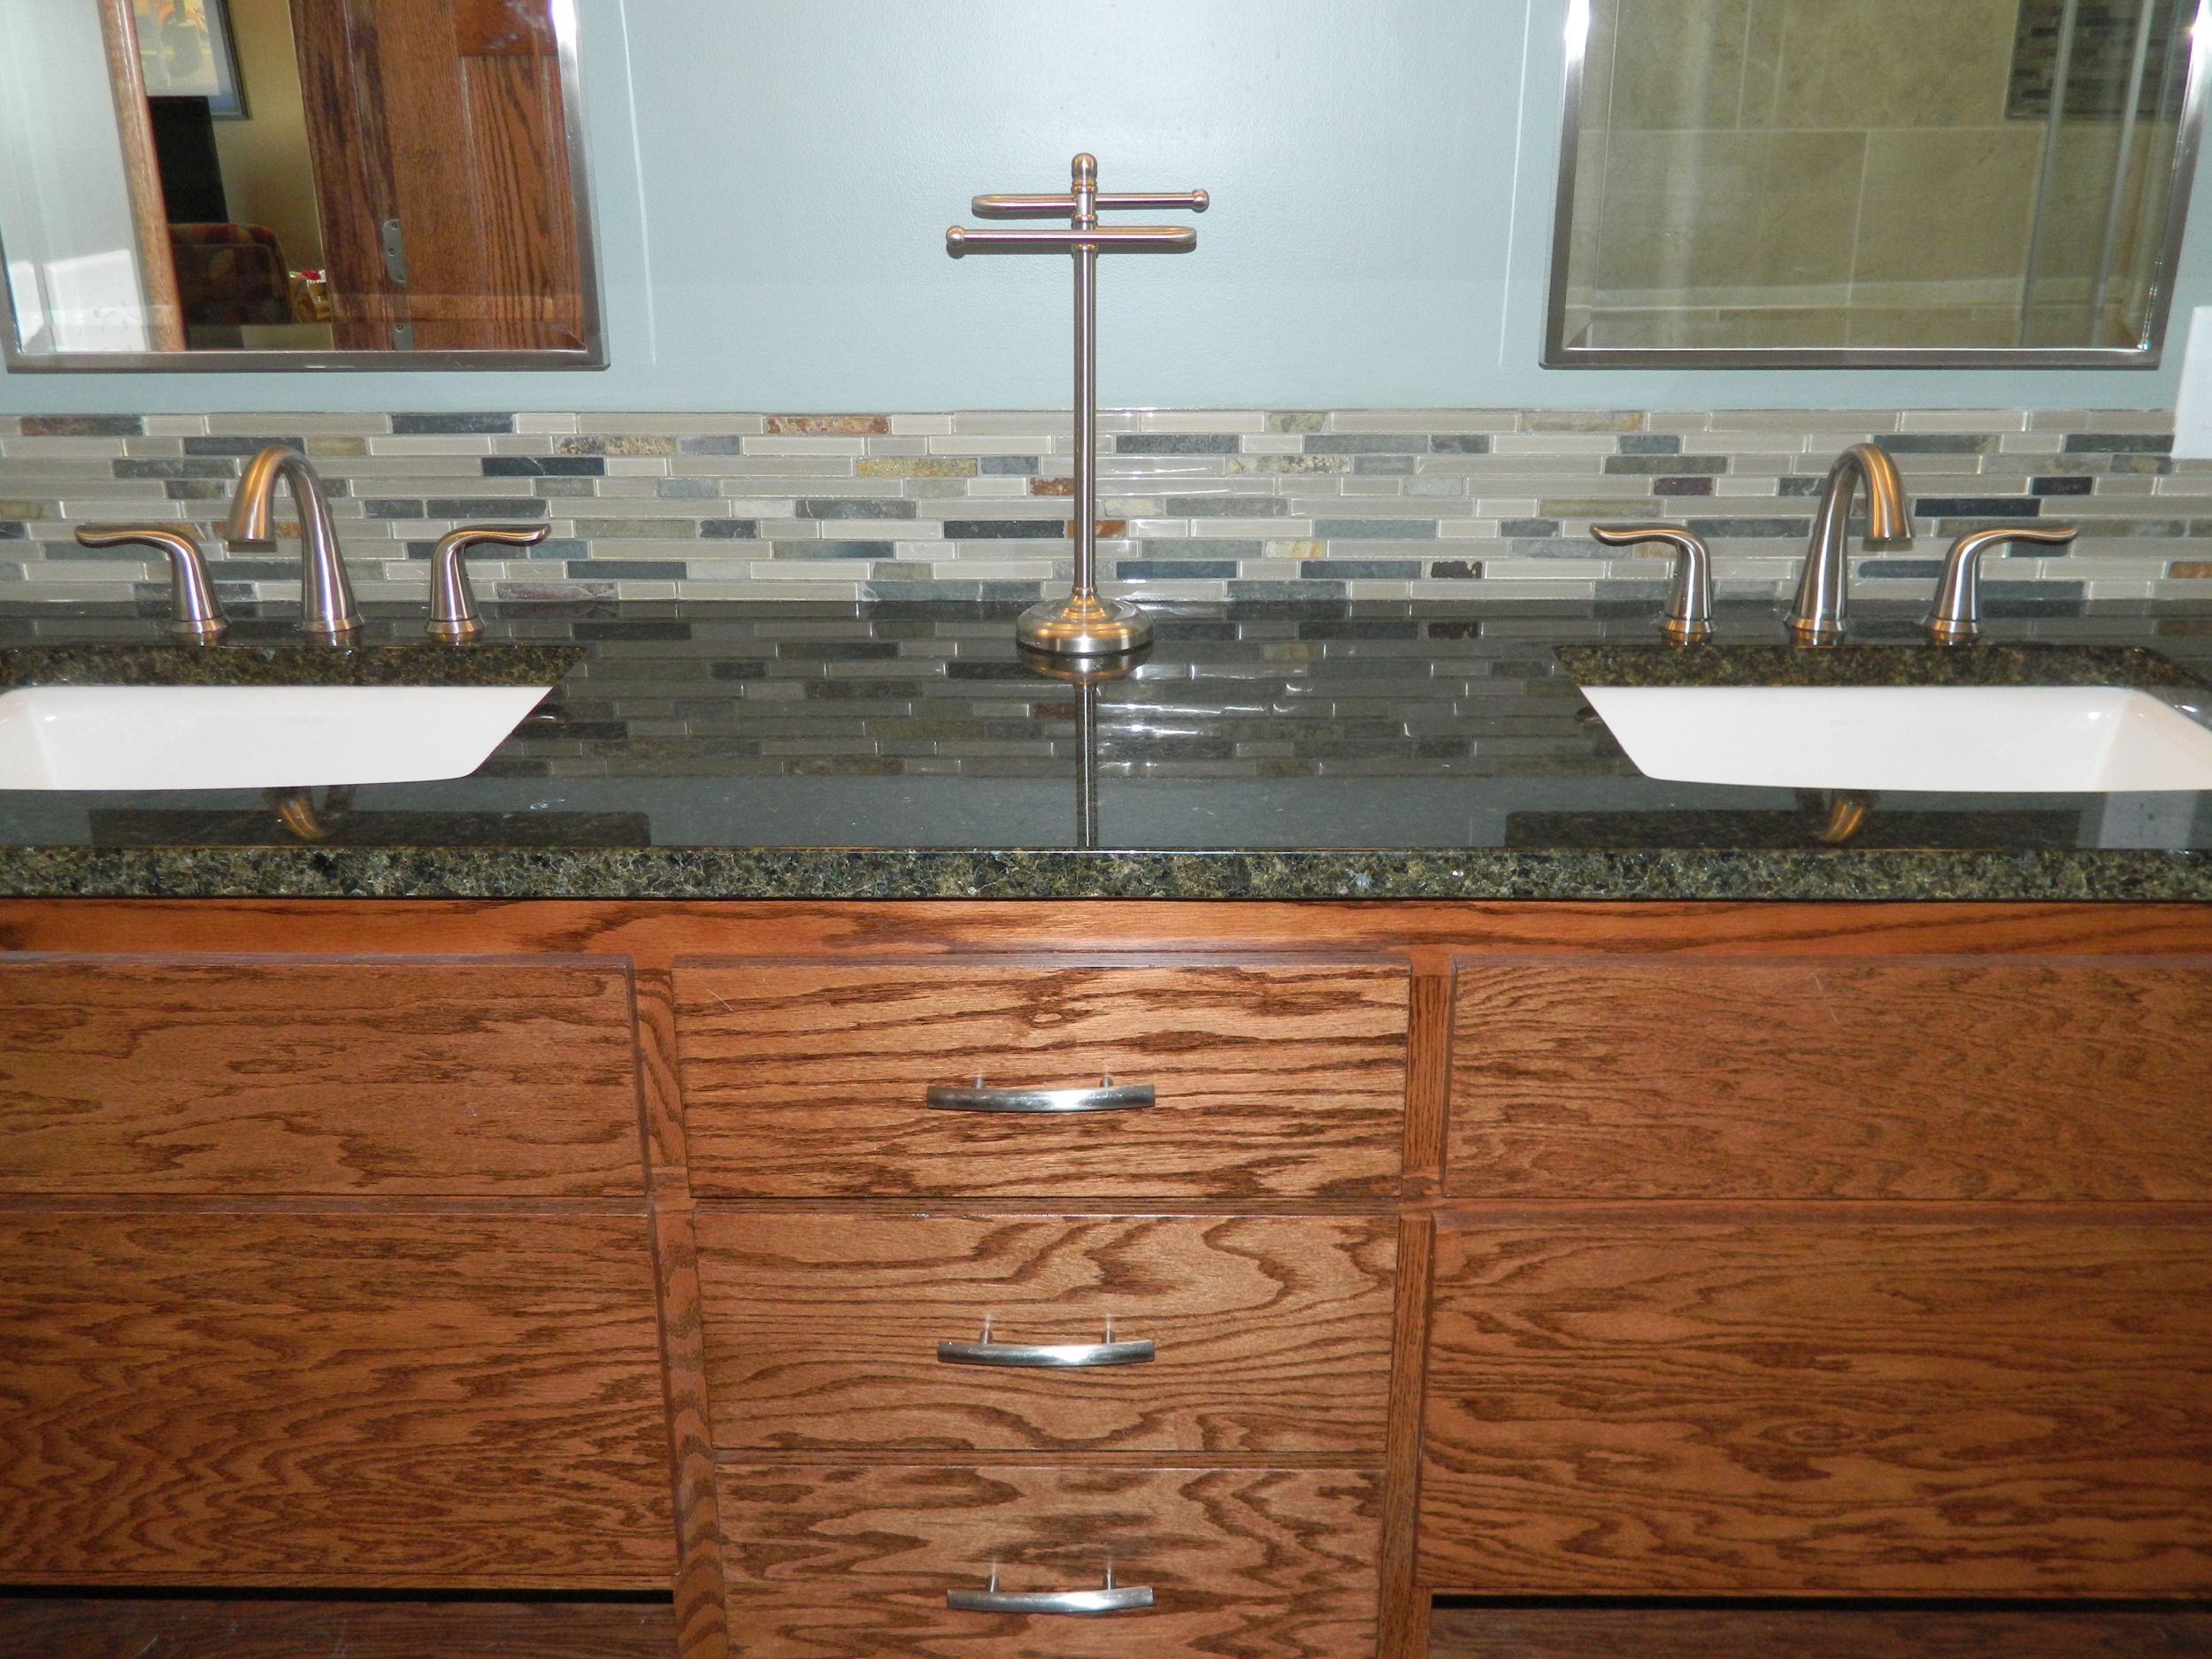 Bathroom remodel with double vanity and back splash.